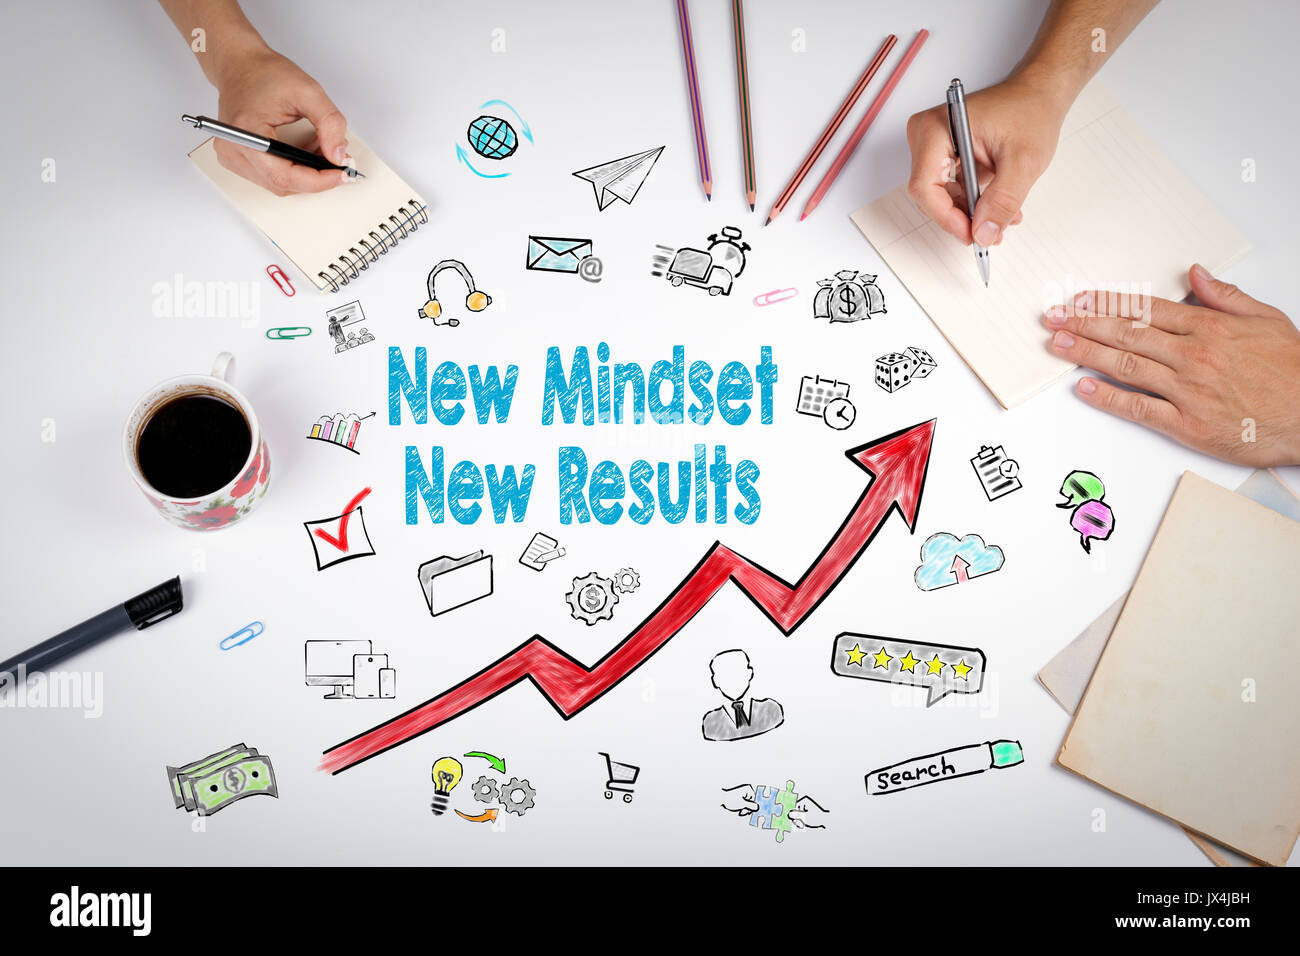 New Mindset New Results Concept. The meeting at the white office table. - Stock Image